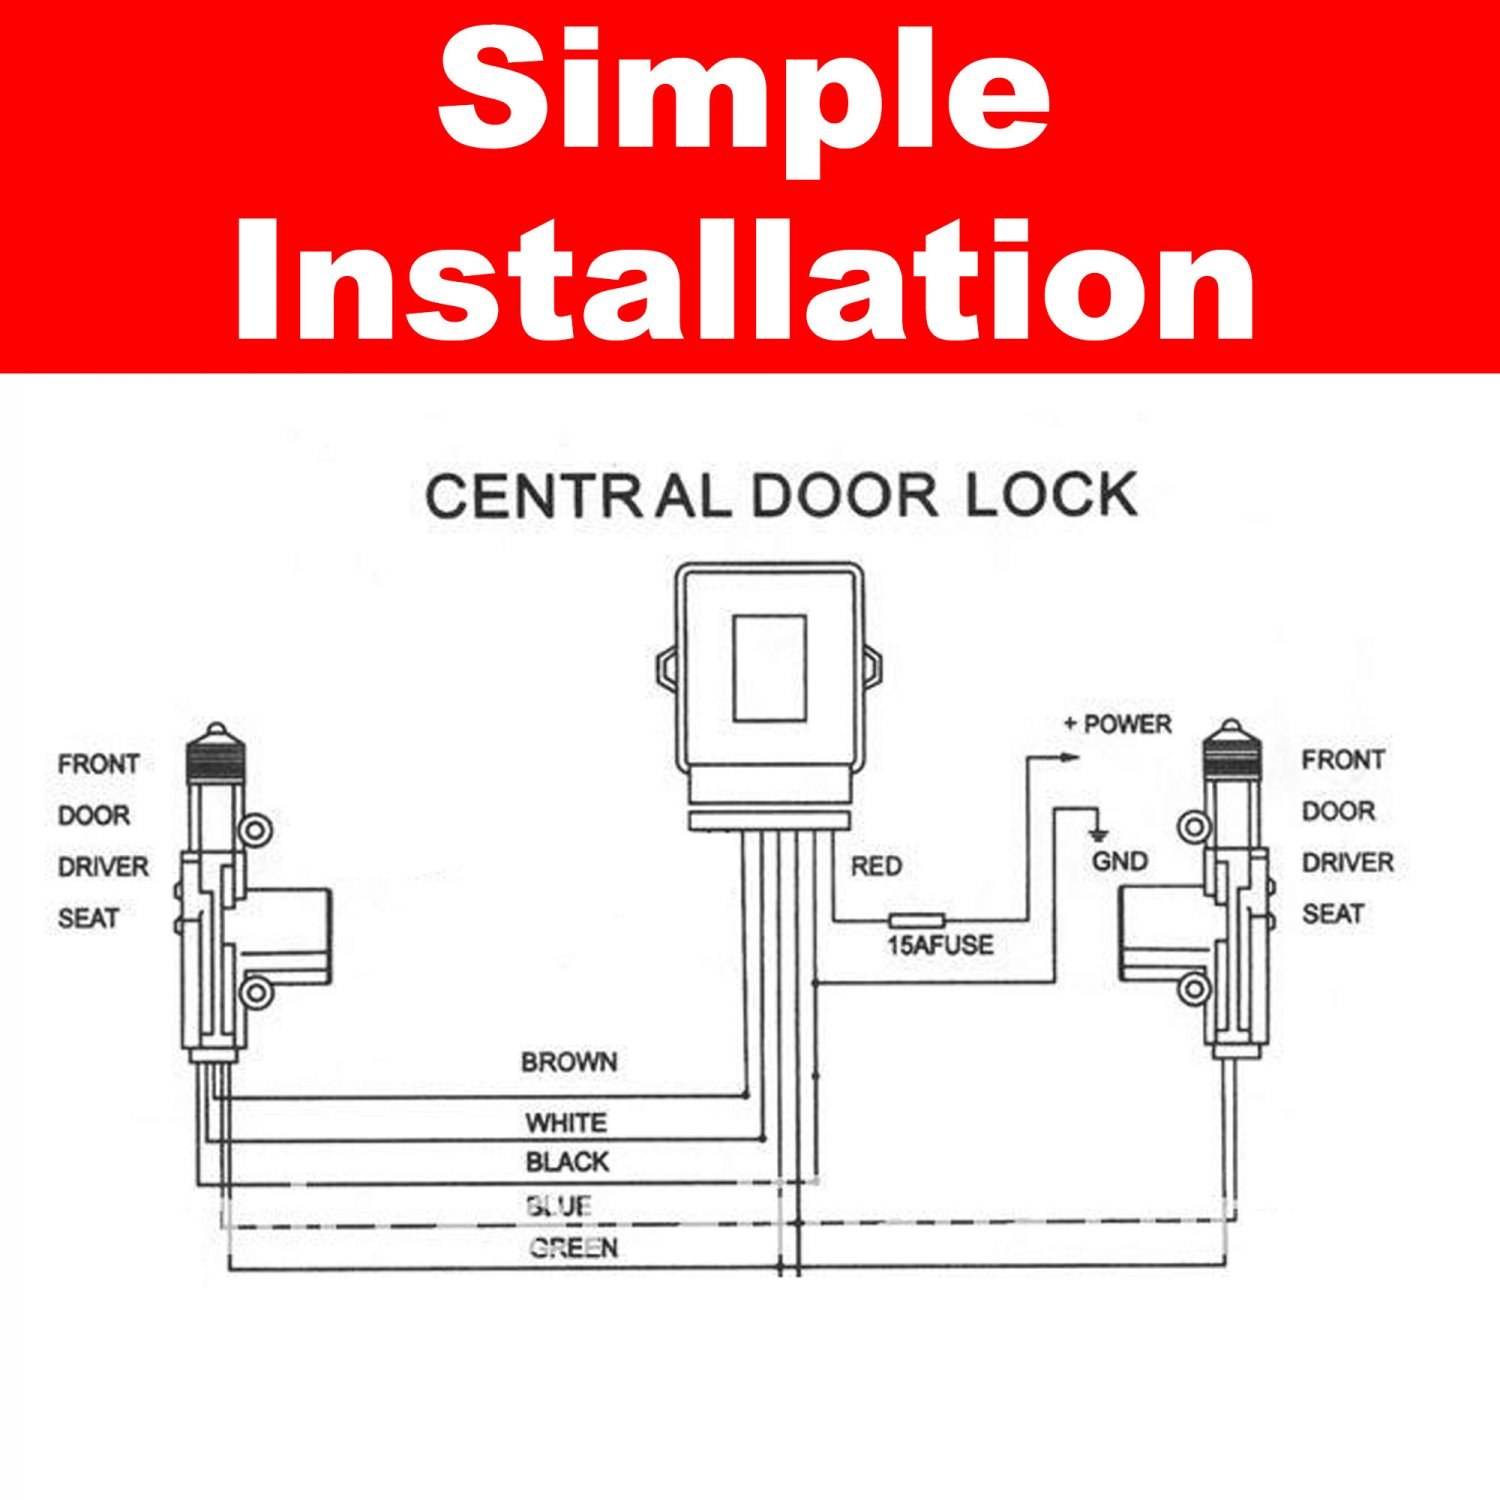 Power door lock kit fpr gm two door plunger style ebay for What is fpr rating